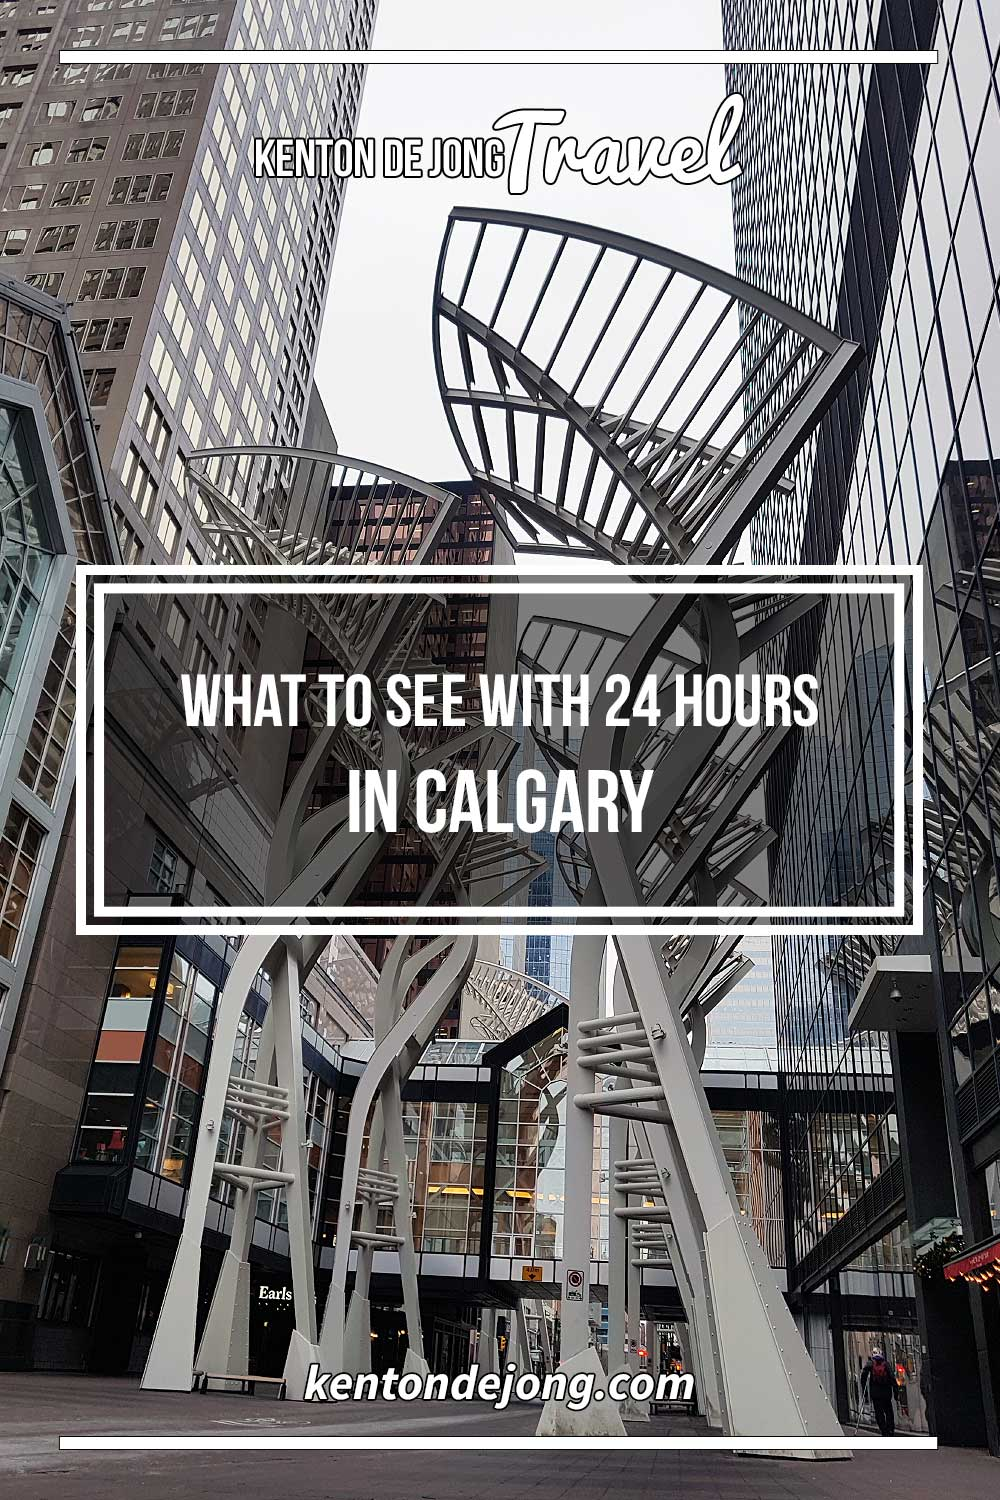 What to See With 24 Hours in Calgary